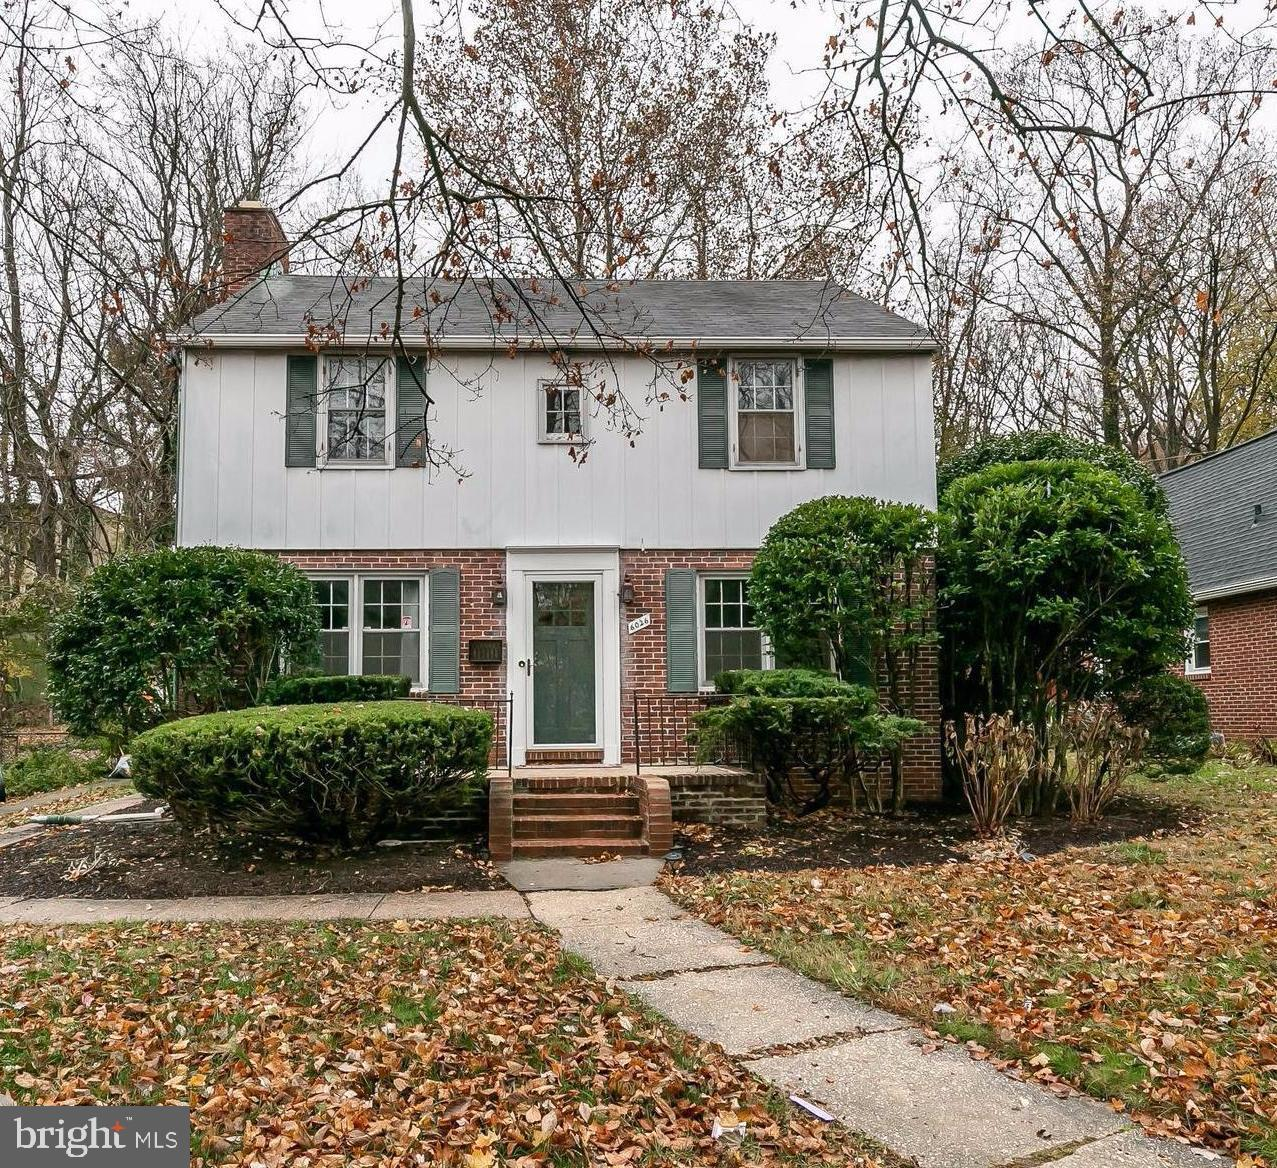 6026 CROSS COUNTRY BOULEVARD, BALTIMORE, MD 21215